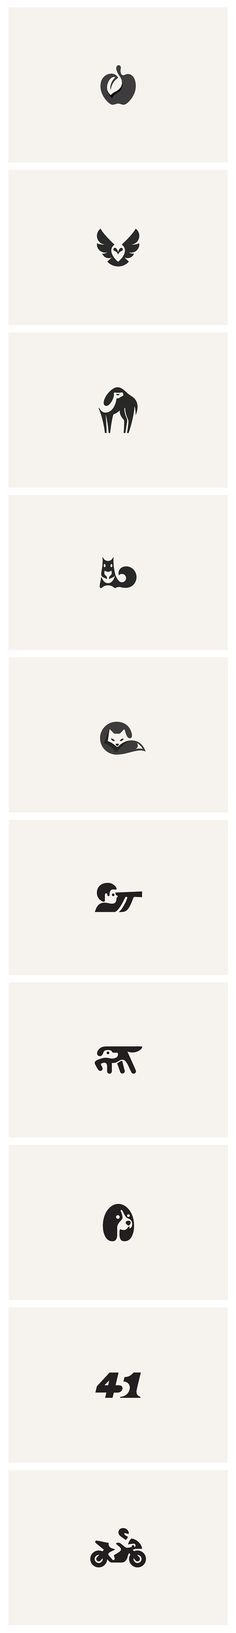 More Negative Space Madness by George Bokhua